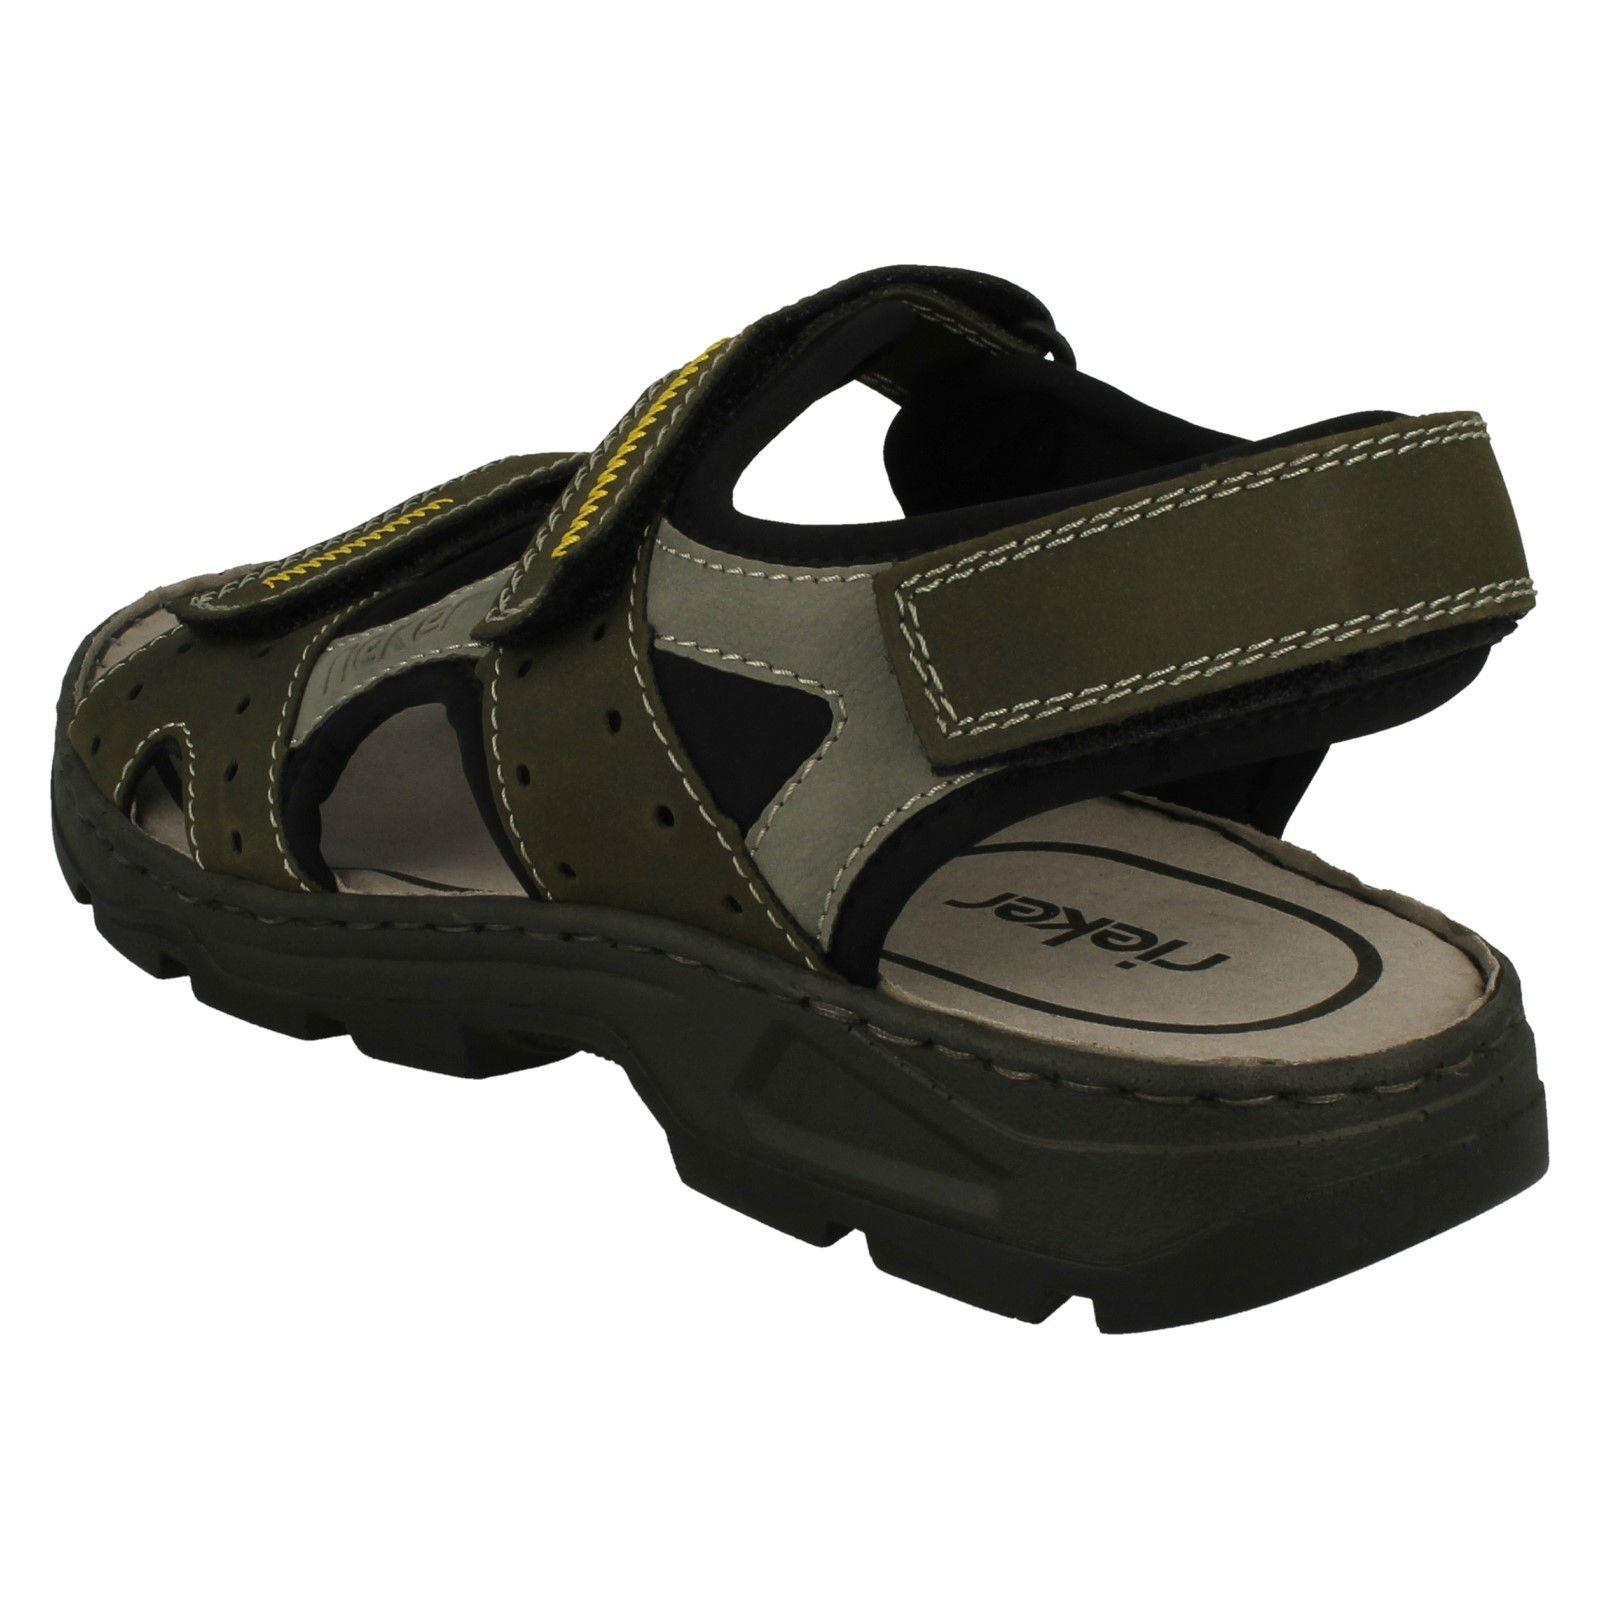 Mens-Rieker-Casual-Strapped-Sandals-26157 thumbnail 7